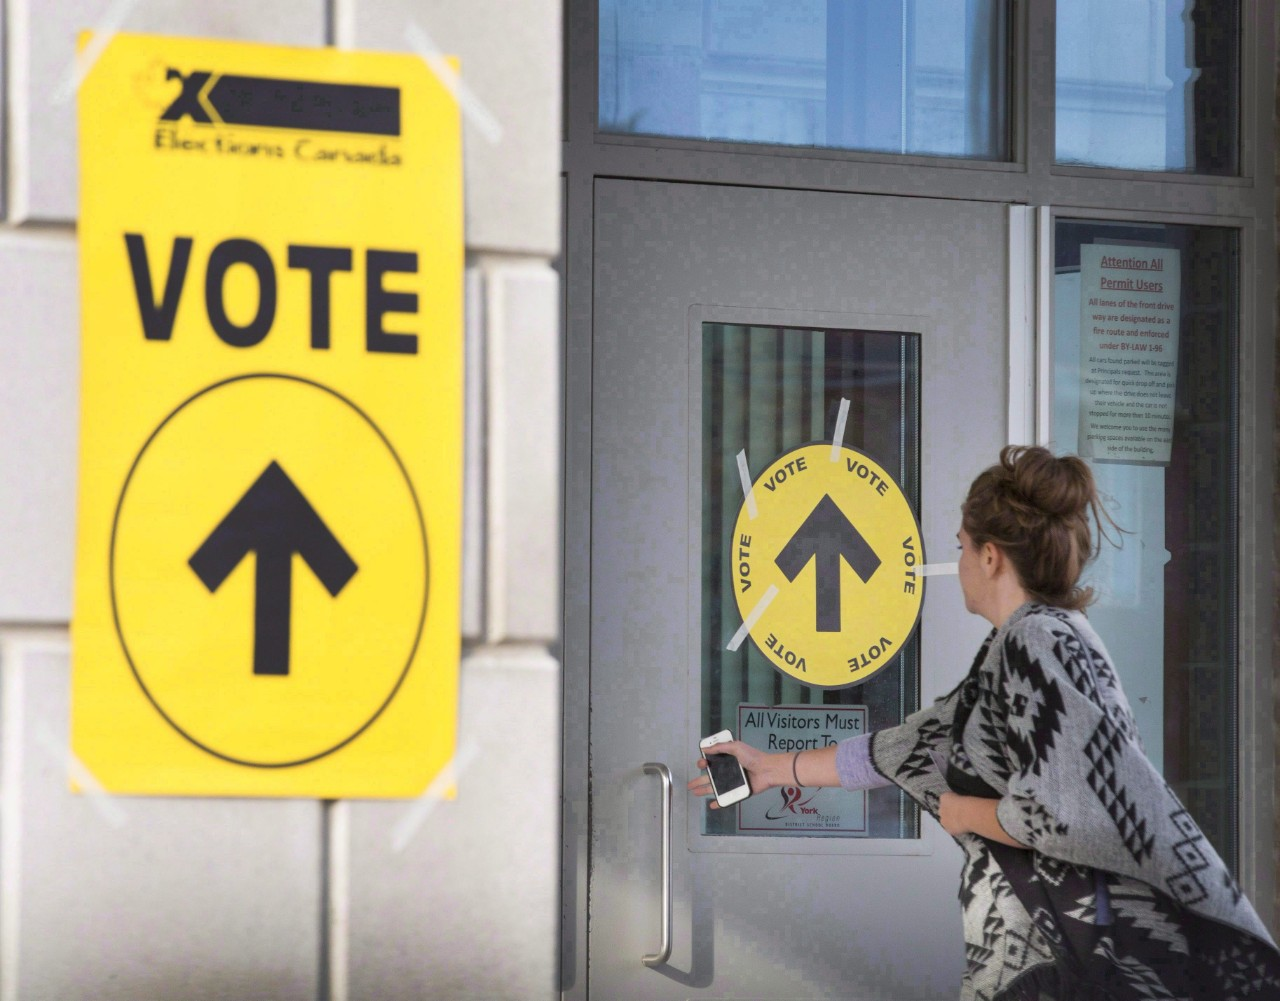 A woman enters Maple High School in Vaughan, Ont., to cast her vote in the Canadian federal election on Oct. 19, 2015. (Peter Power / THE CANADIAN PRESS)